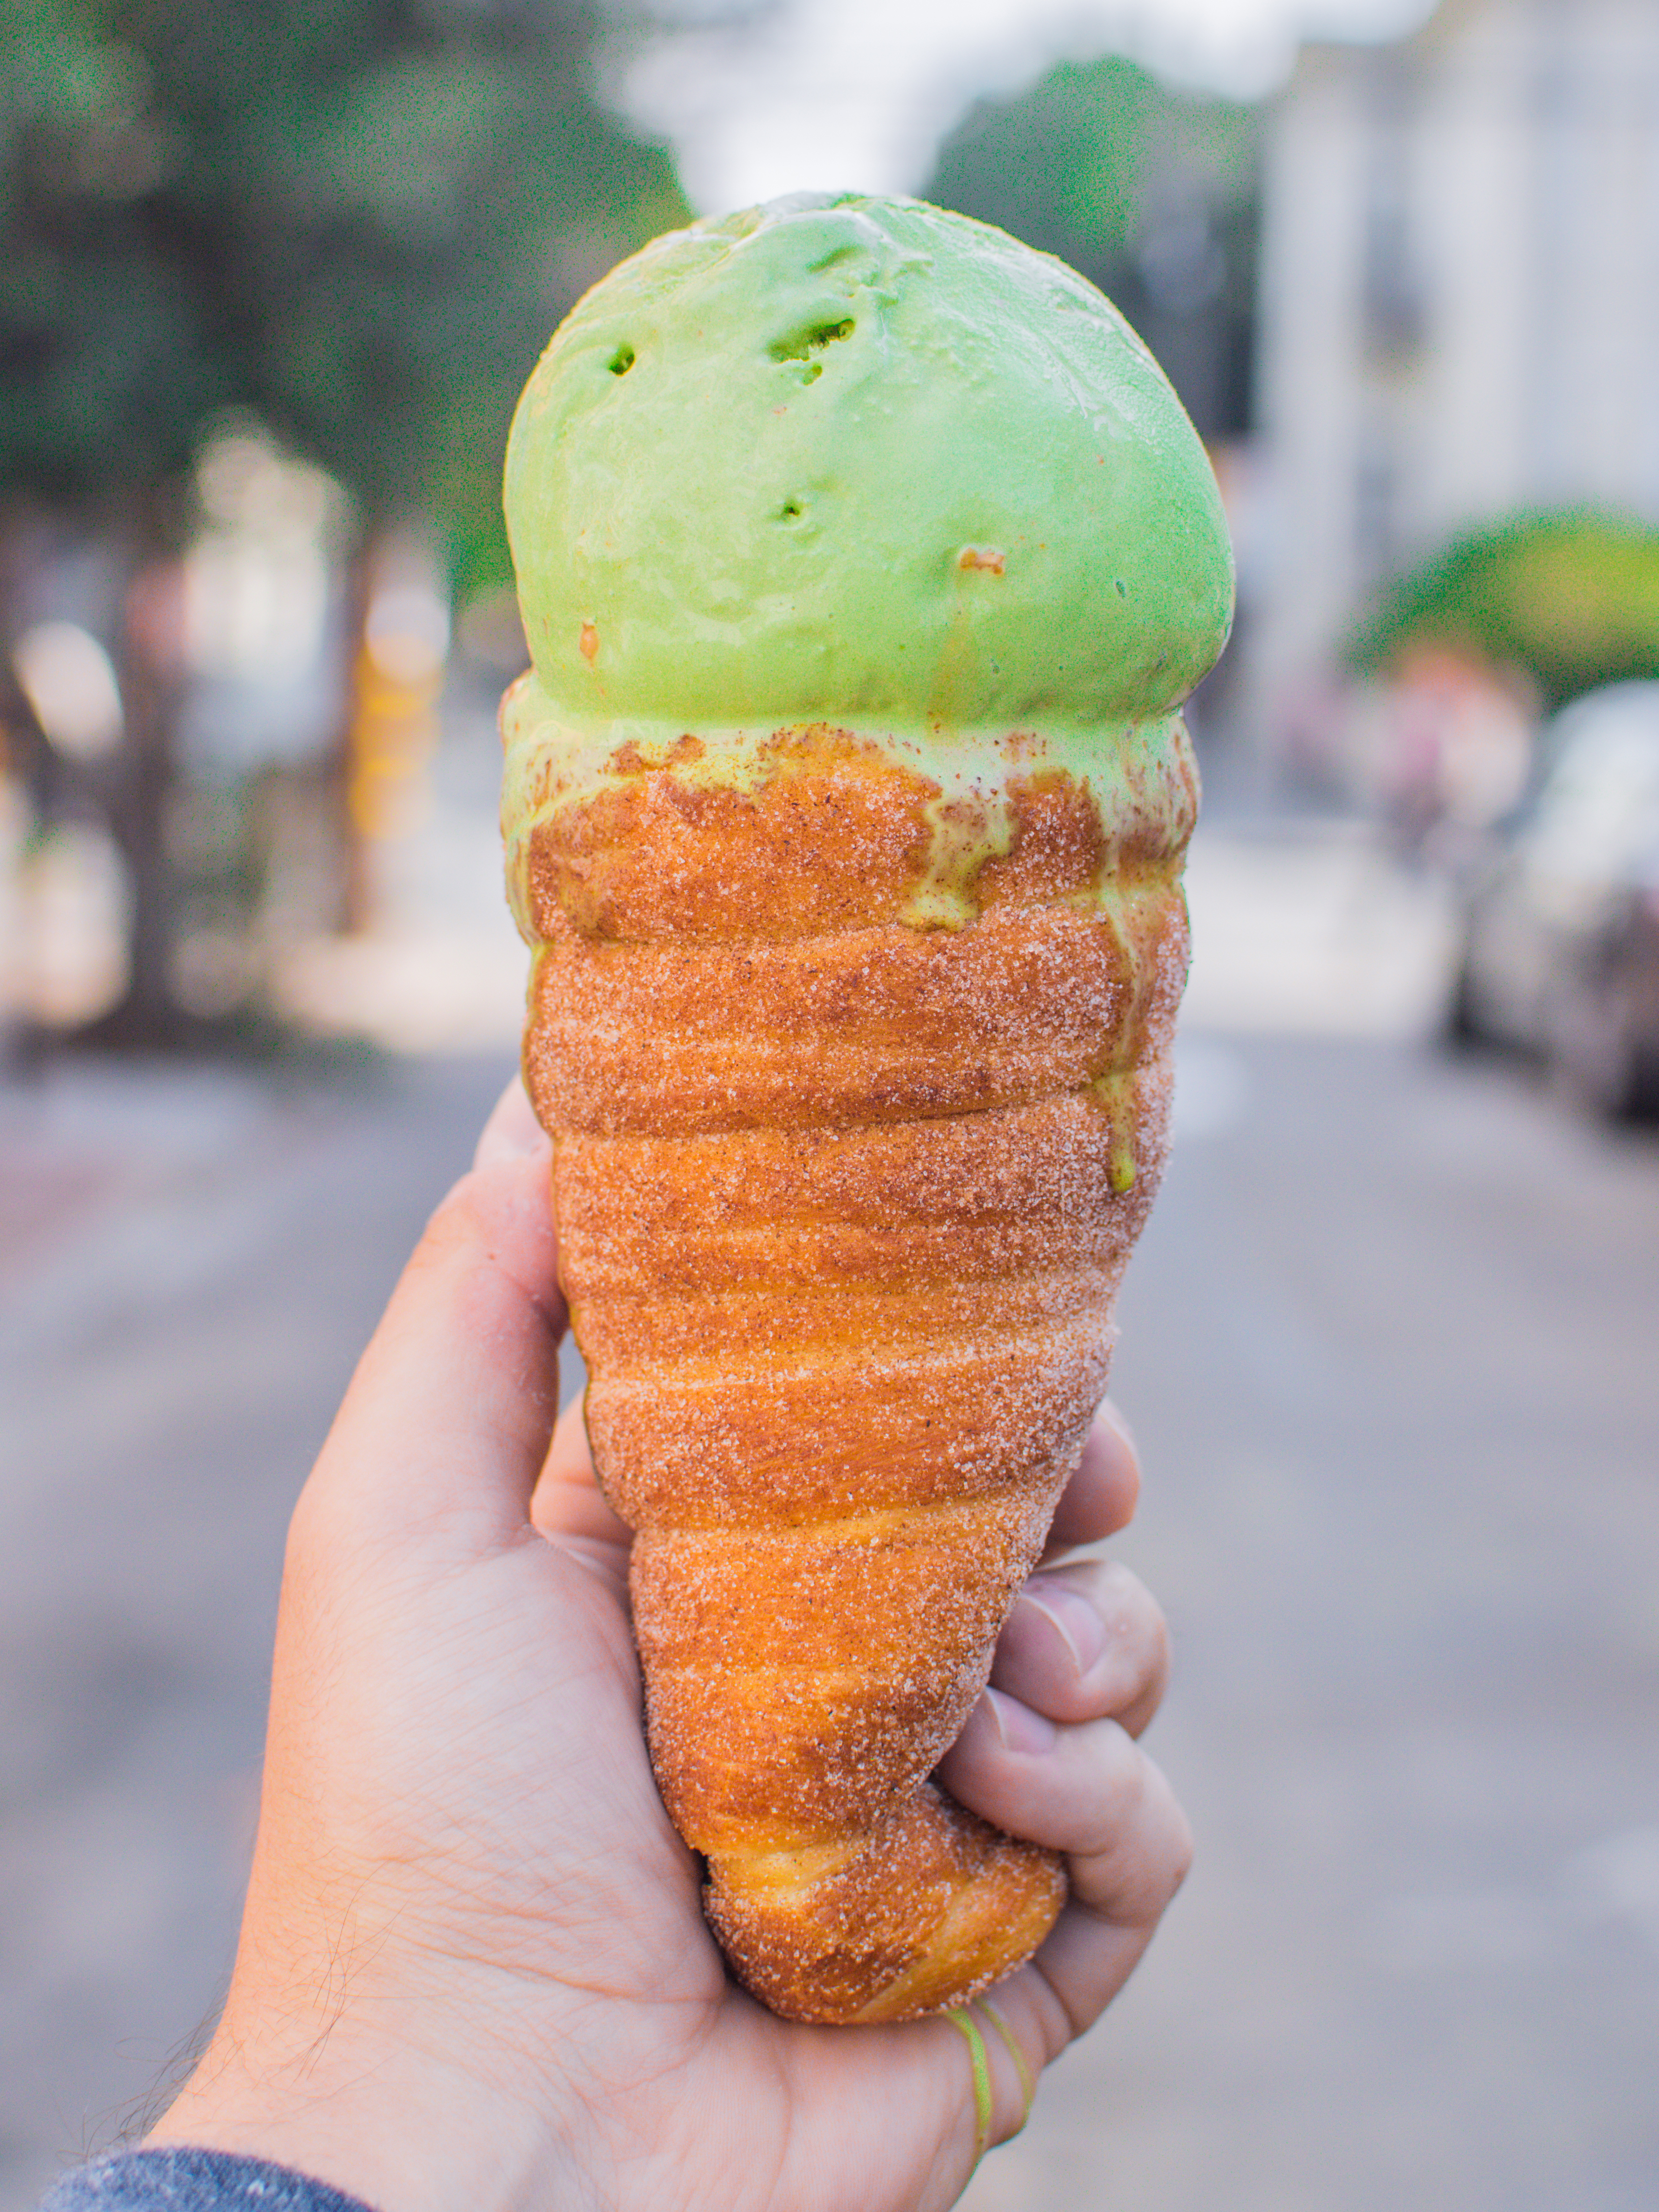 best ice cream in san francisco - Garden Creamery